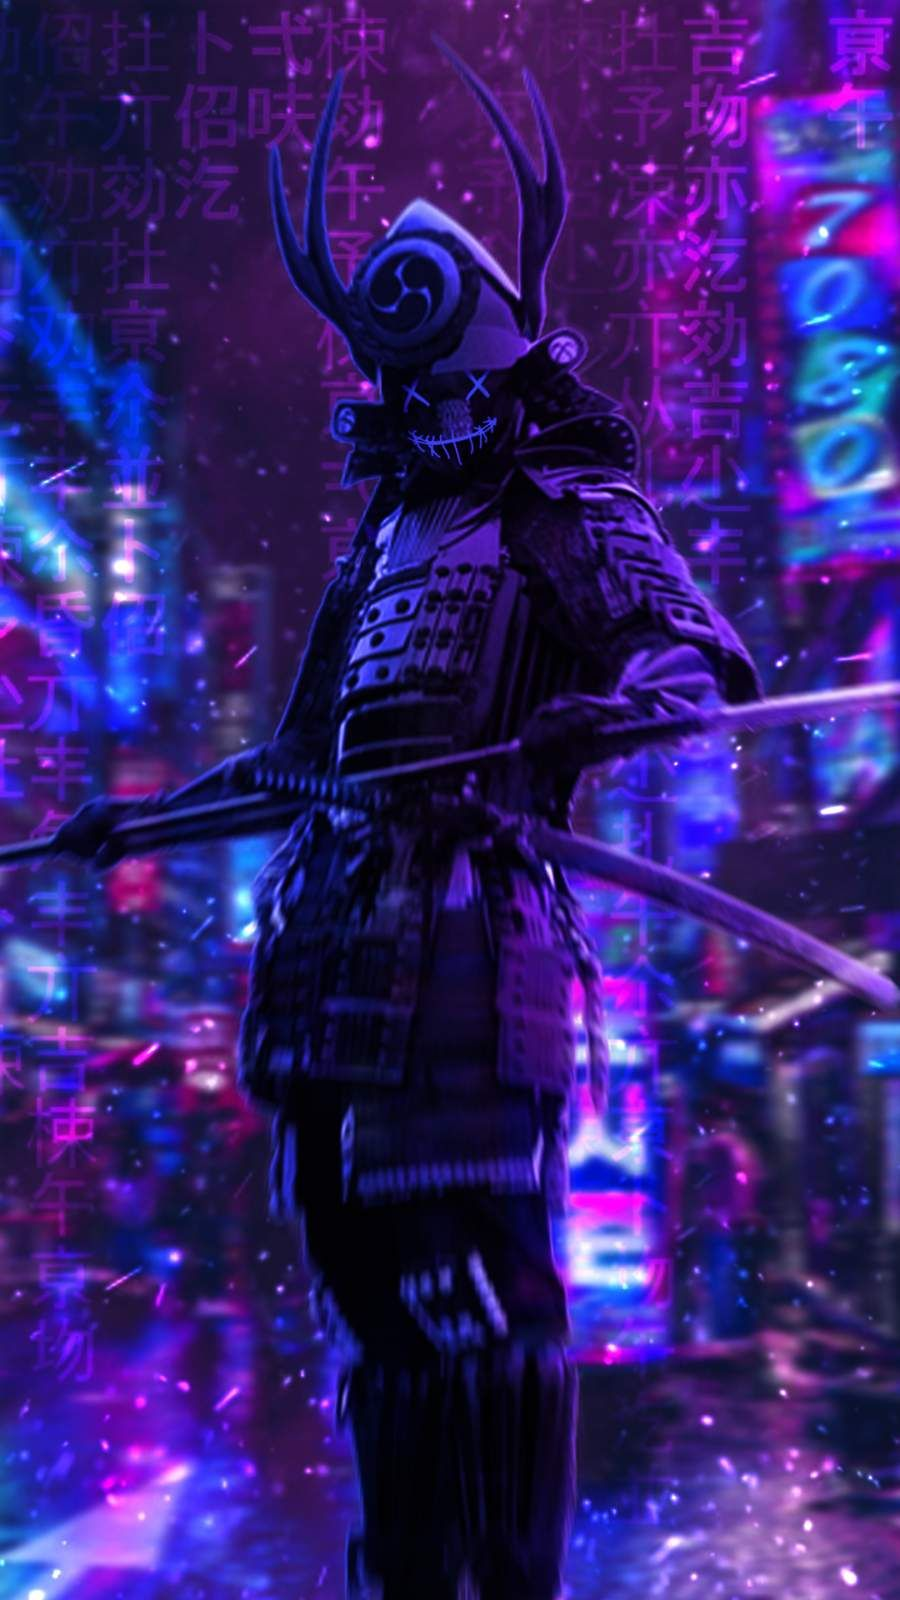 Samurai Iphone Wallpaper In 2020 Samurai Wallpaper Samurai Artwork Samurai Art